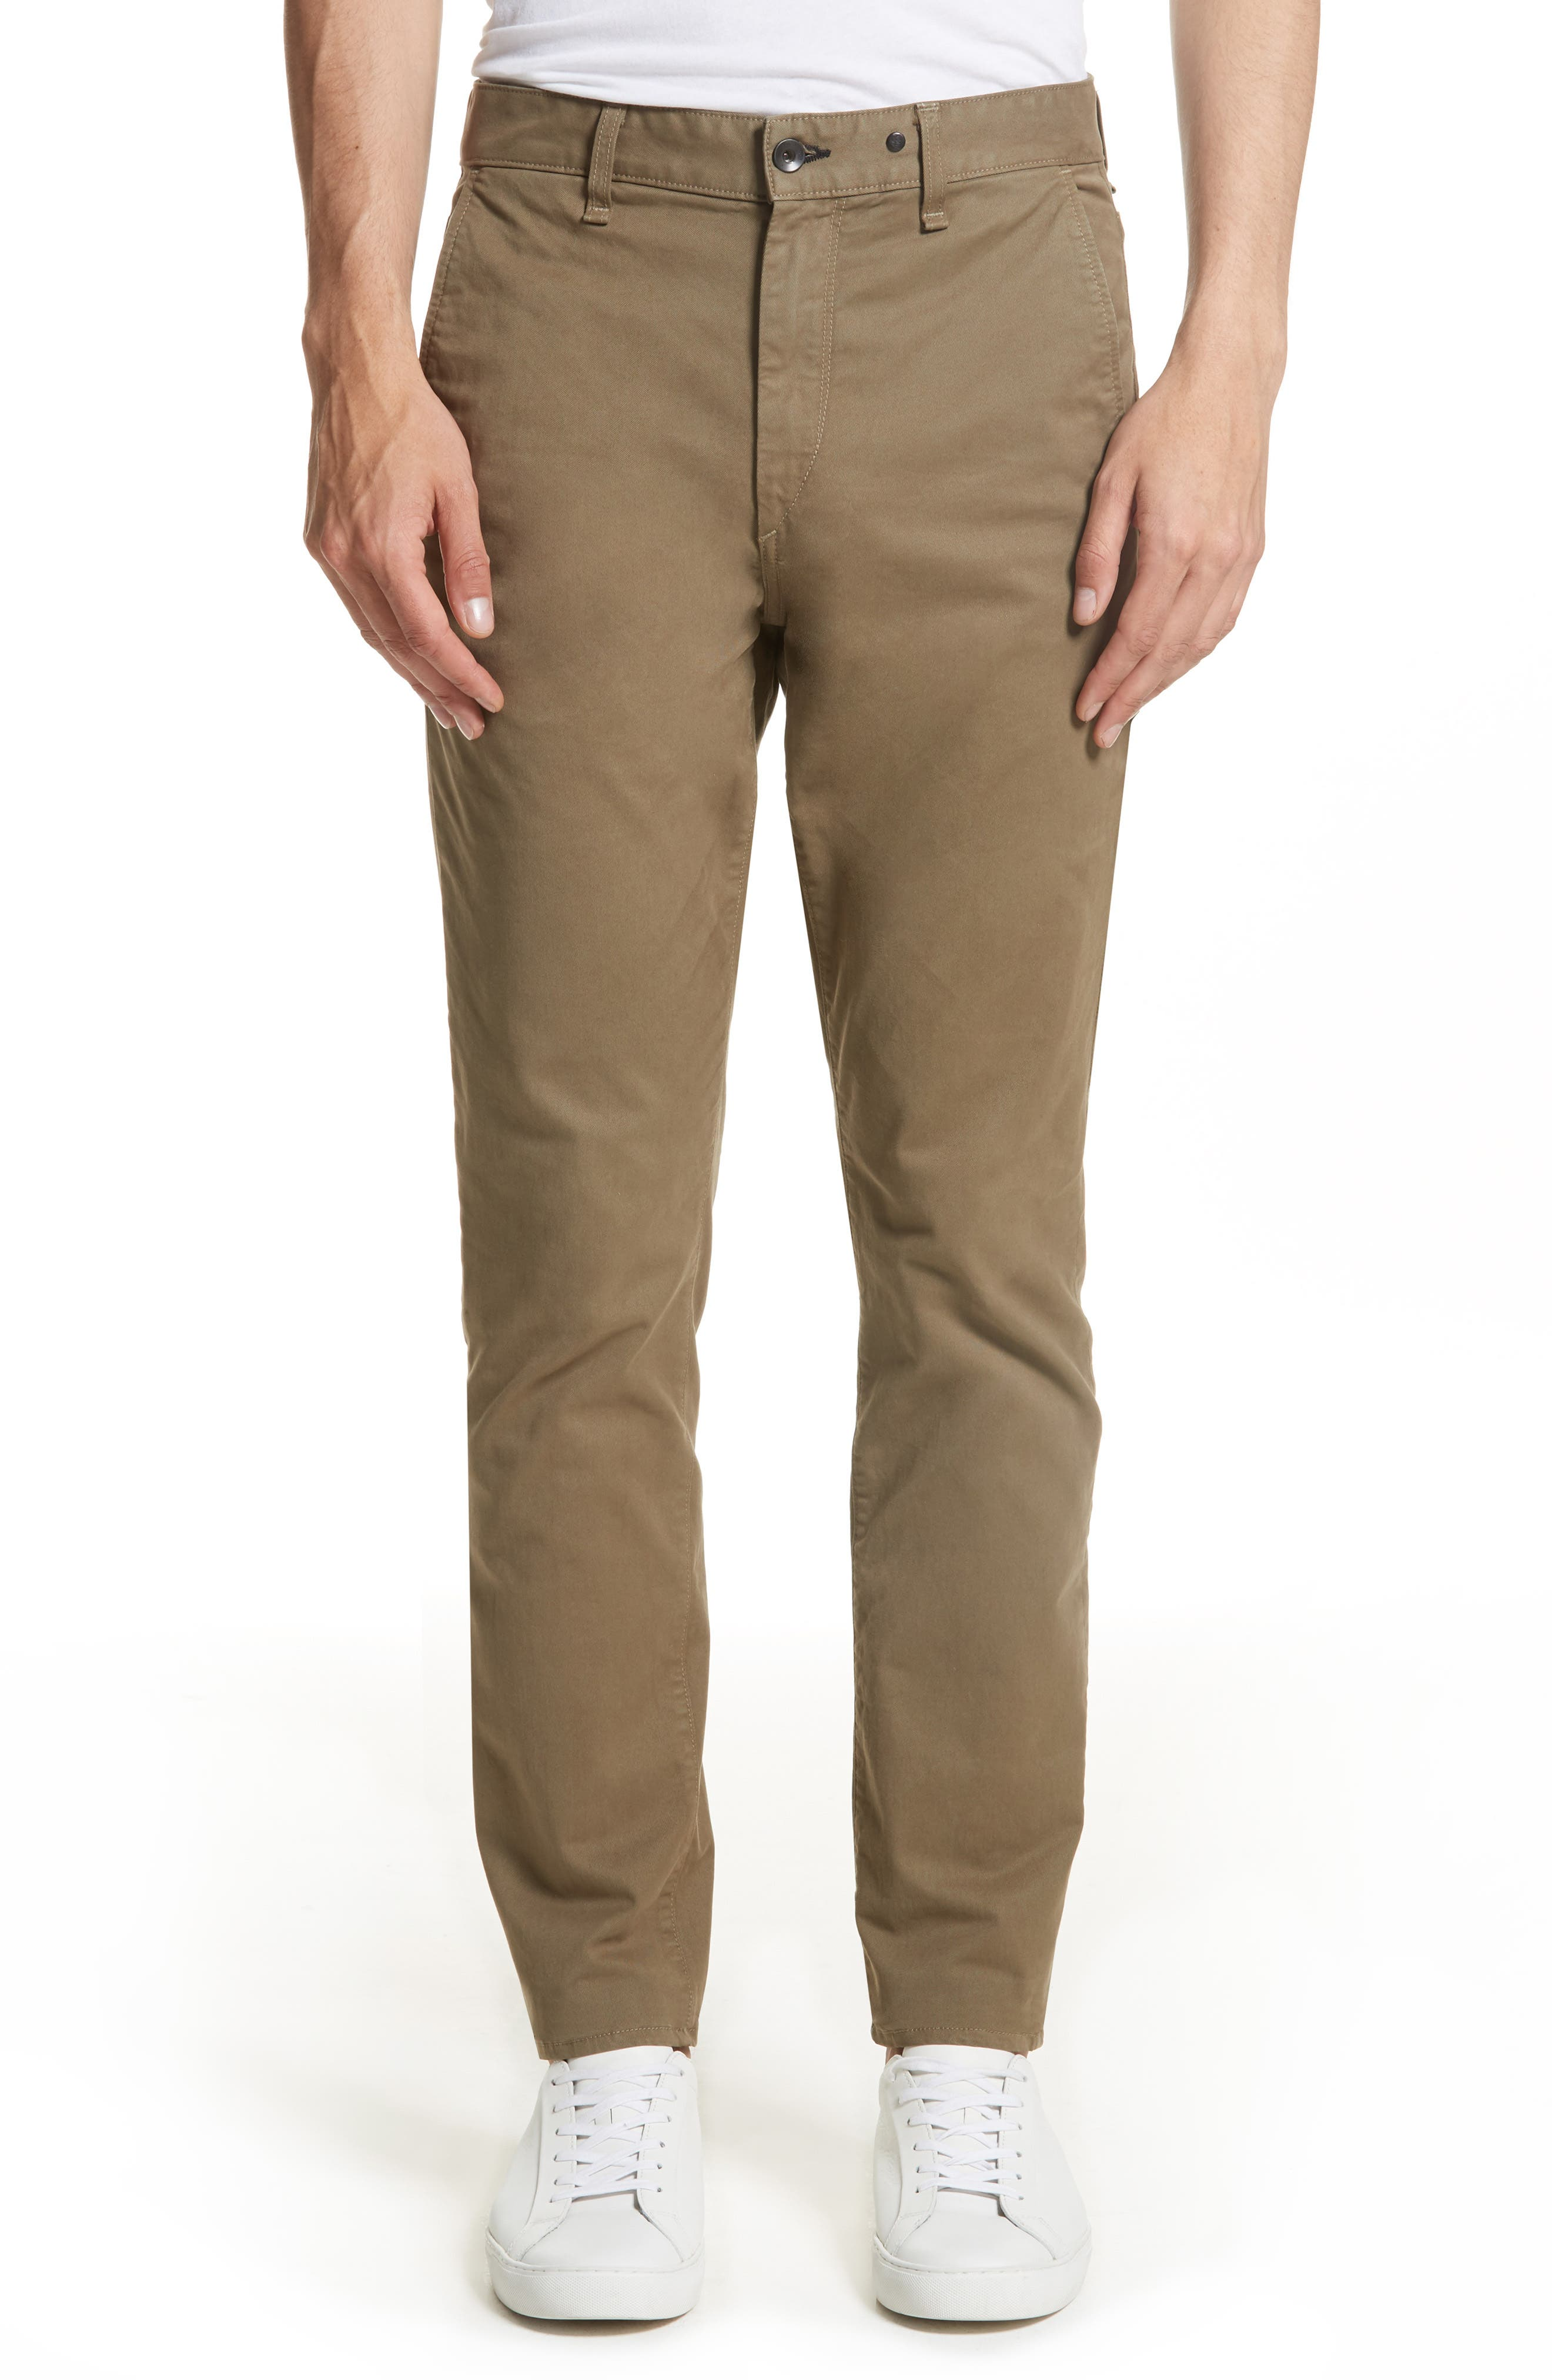 Fit 2 Chinos by Rag & Bone